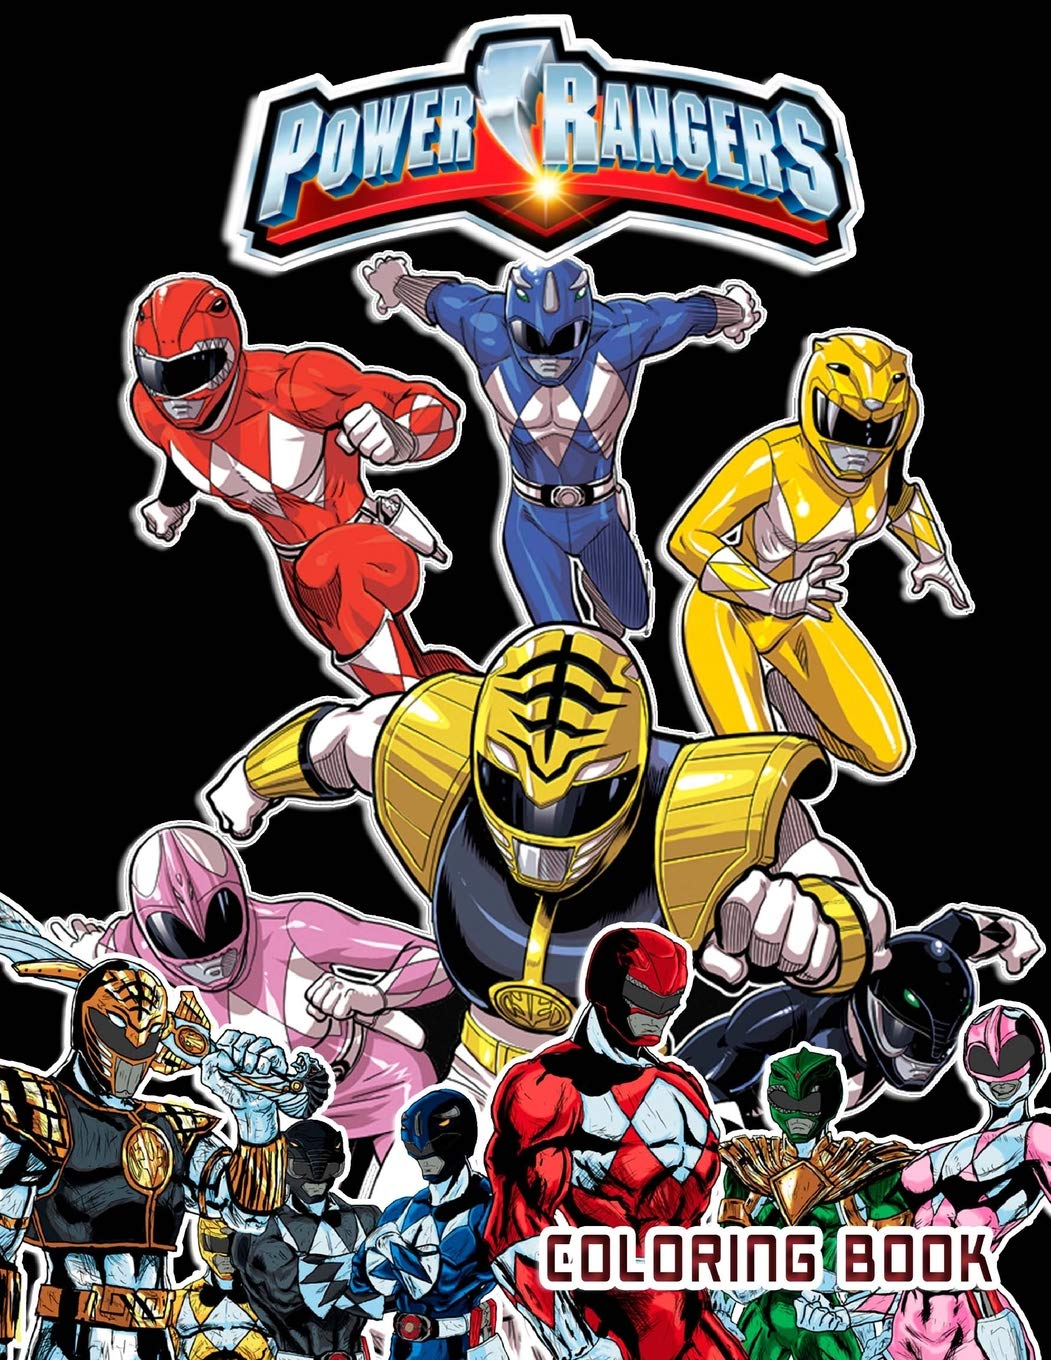 Power Rangers Coloring Book: 40 Coloring Pages: John Liwer ...